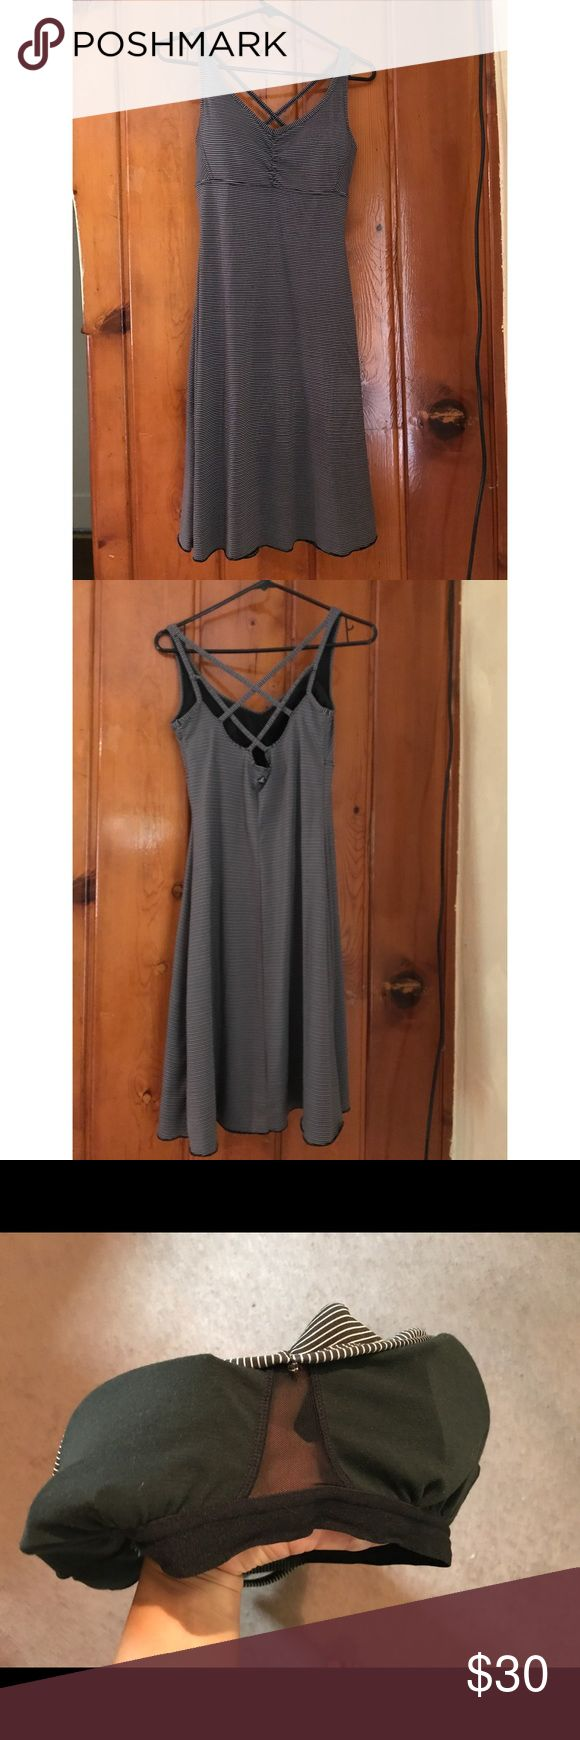 Athletic Columbia Dress Flowy Columbia dress. It has a built in bra as well! Love the Zig zag back. It's a great dress for the summer! Only worn once. Columbia Dresses Midi